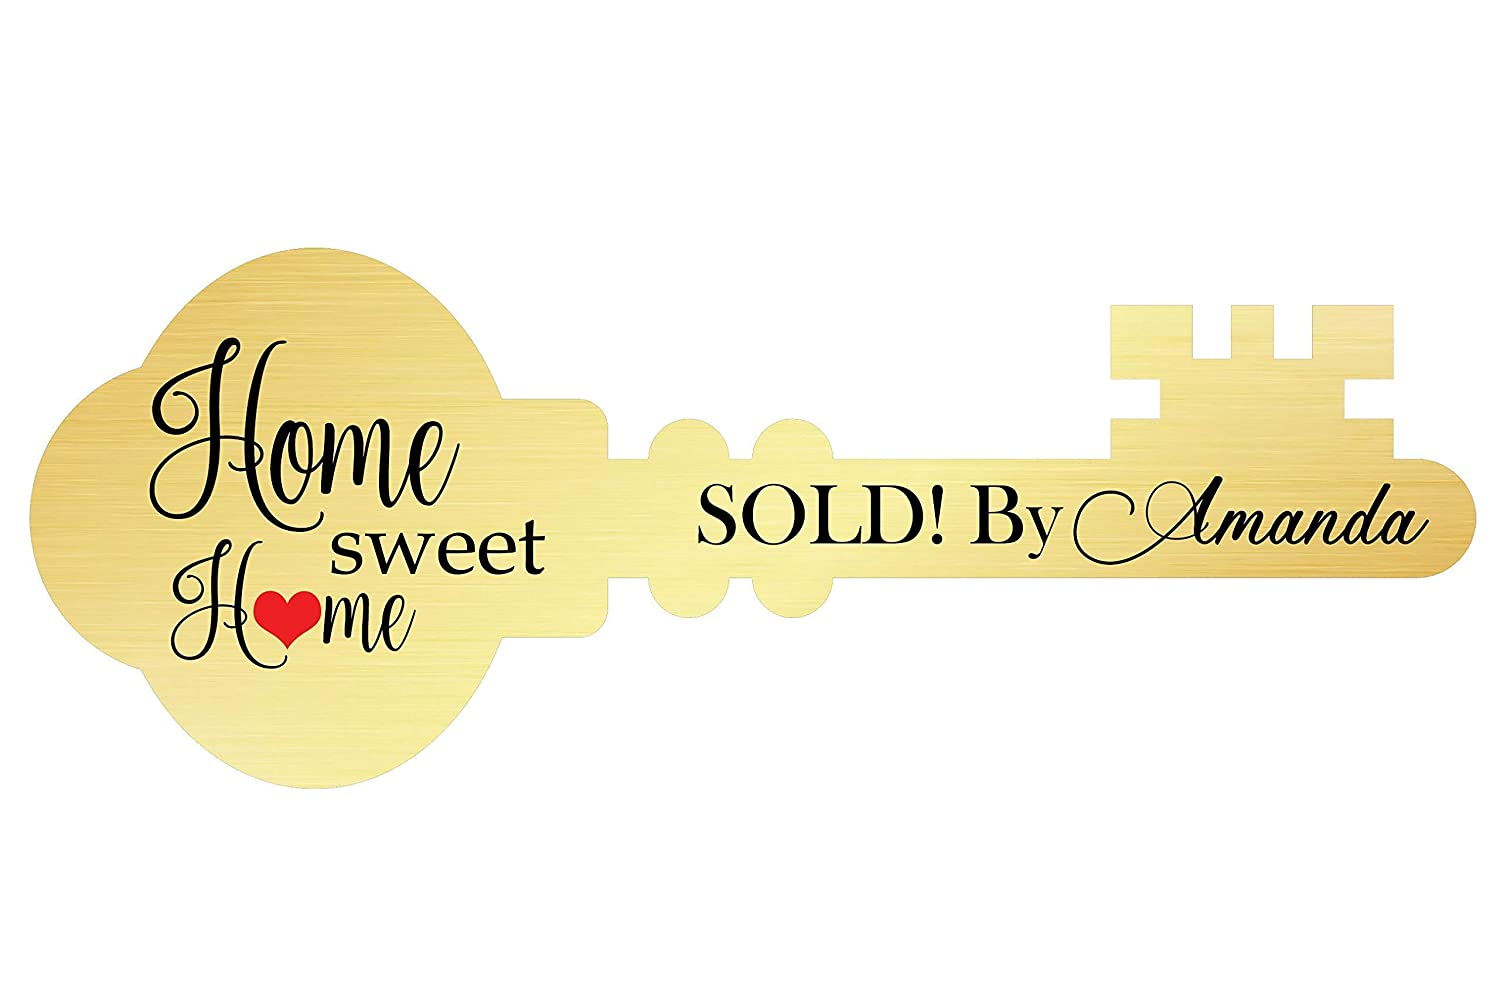 Custom Key Prop Cut Out Giant Key Realtor Prop Size 36x24 and 18x24 Marketing Key Sign Sold By Listing Realtor Key Cut Out Photo Booth Prop